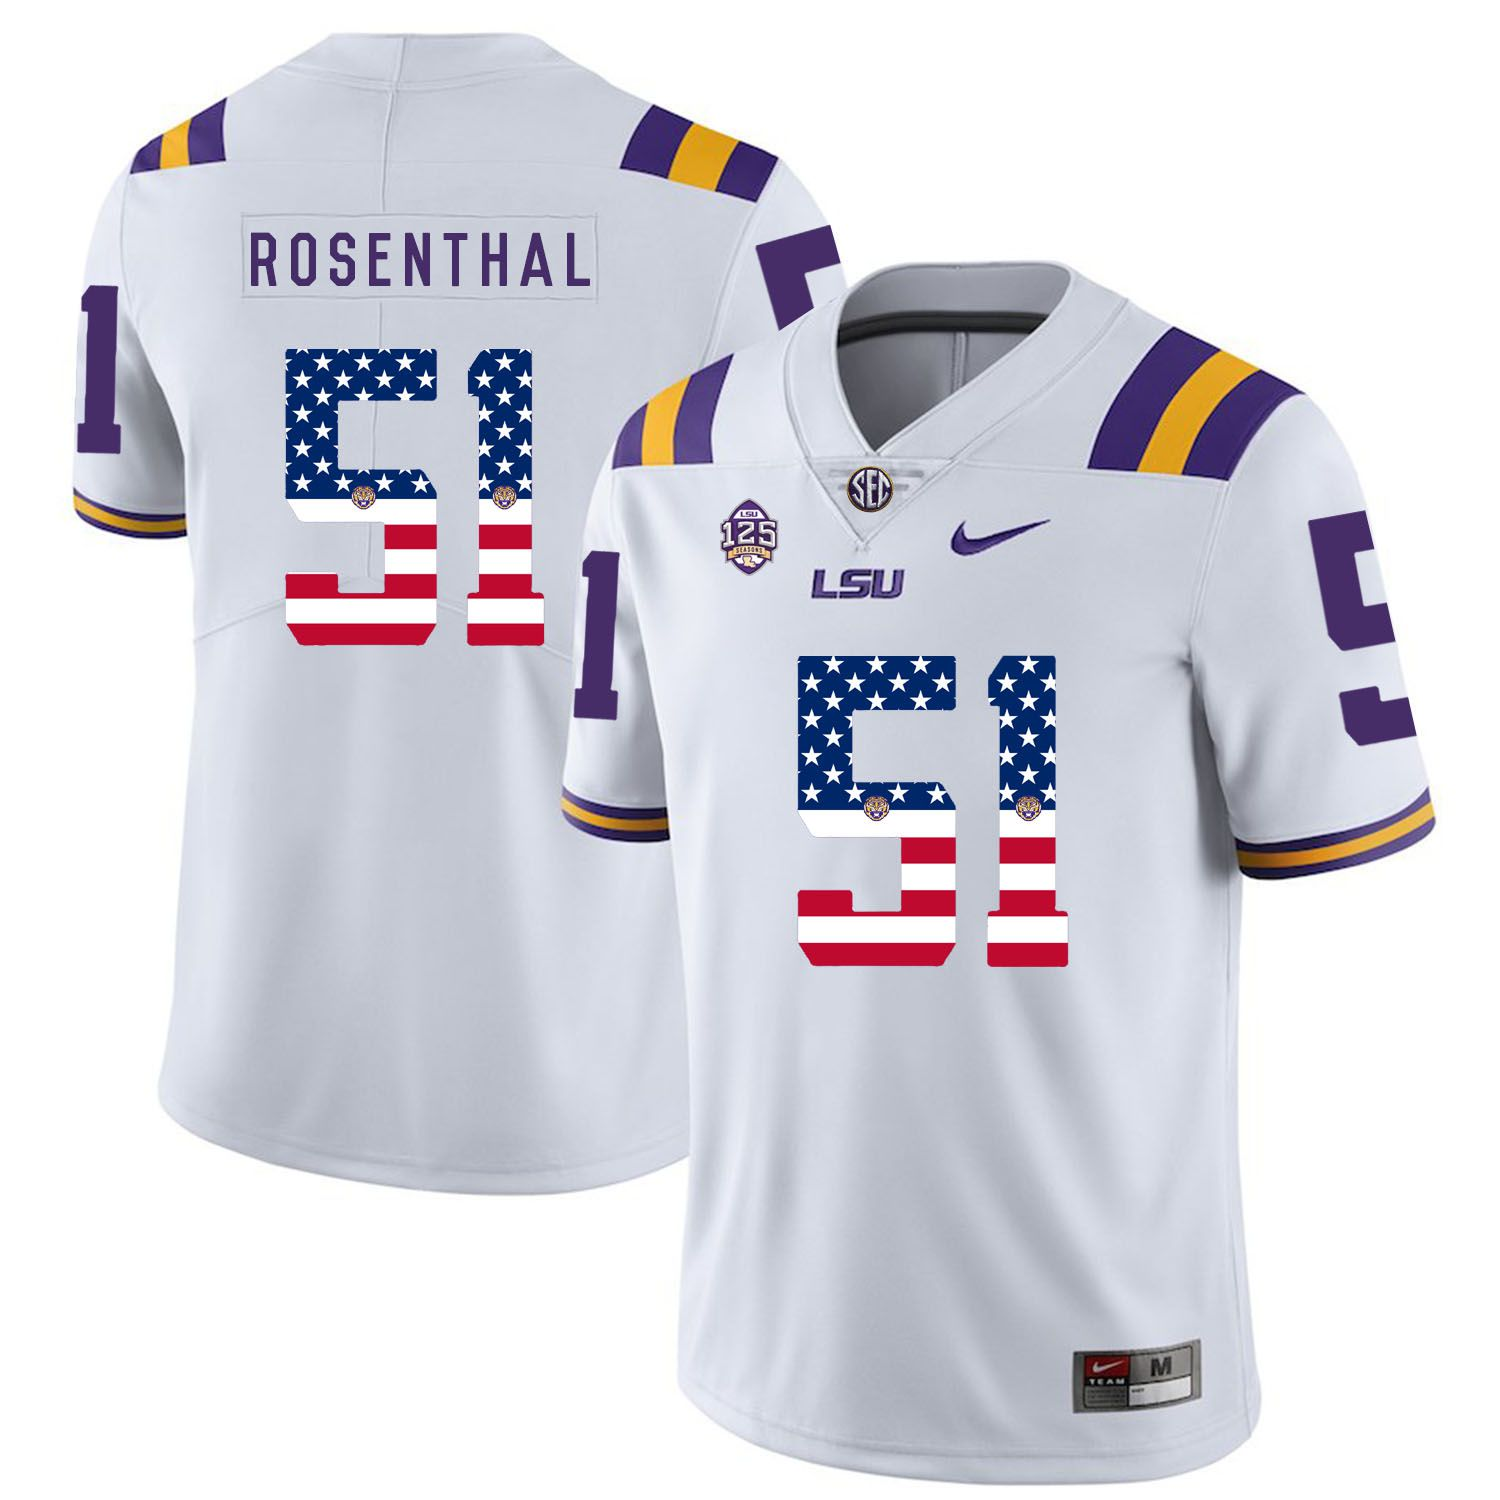 Men LSU Tigers 51 Rosenthal White Flag Customized NCAA Jerseys